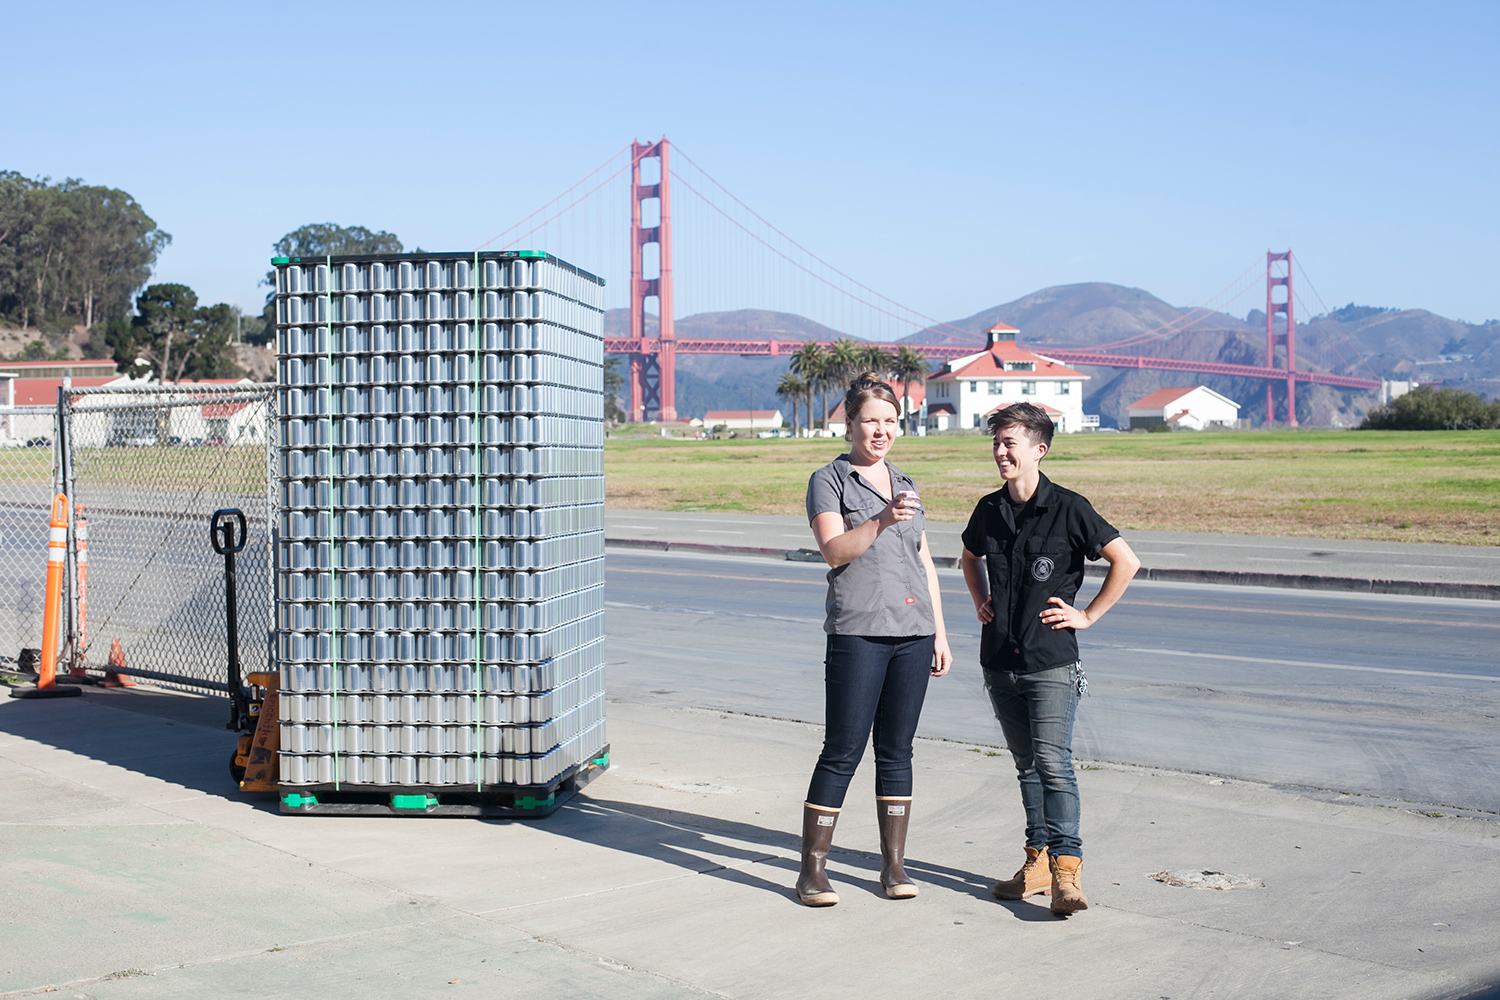 Owners, Jenn and Lindsey, standing in front of the Golden Gate Bridge next to a pallet of empty aluminum cans